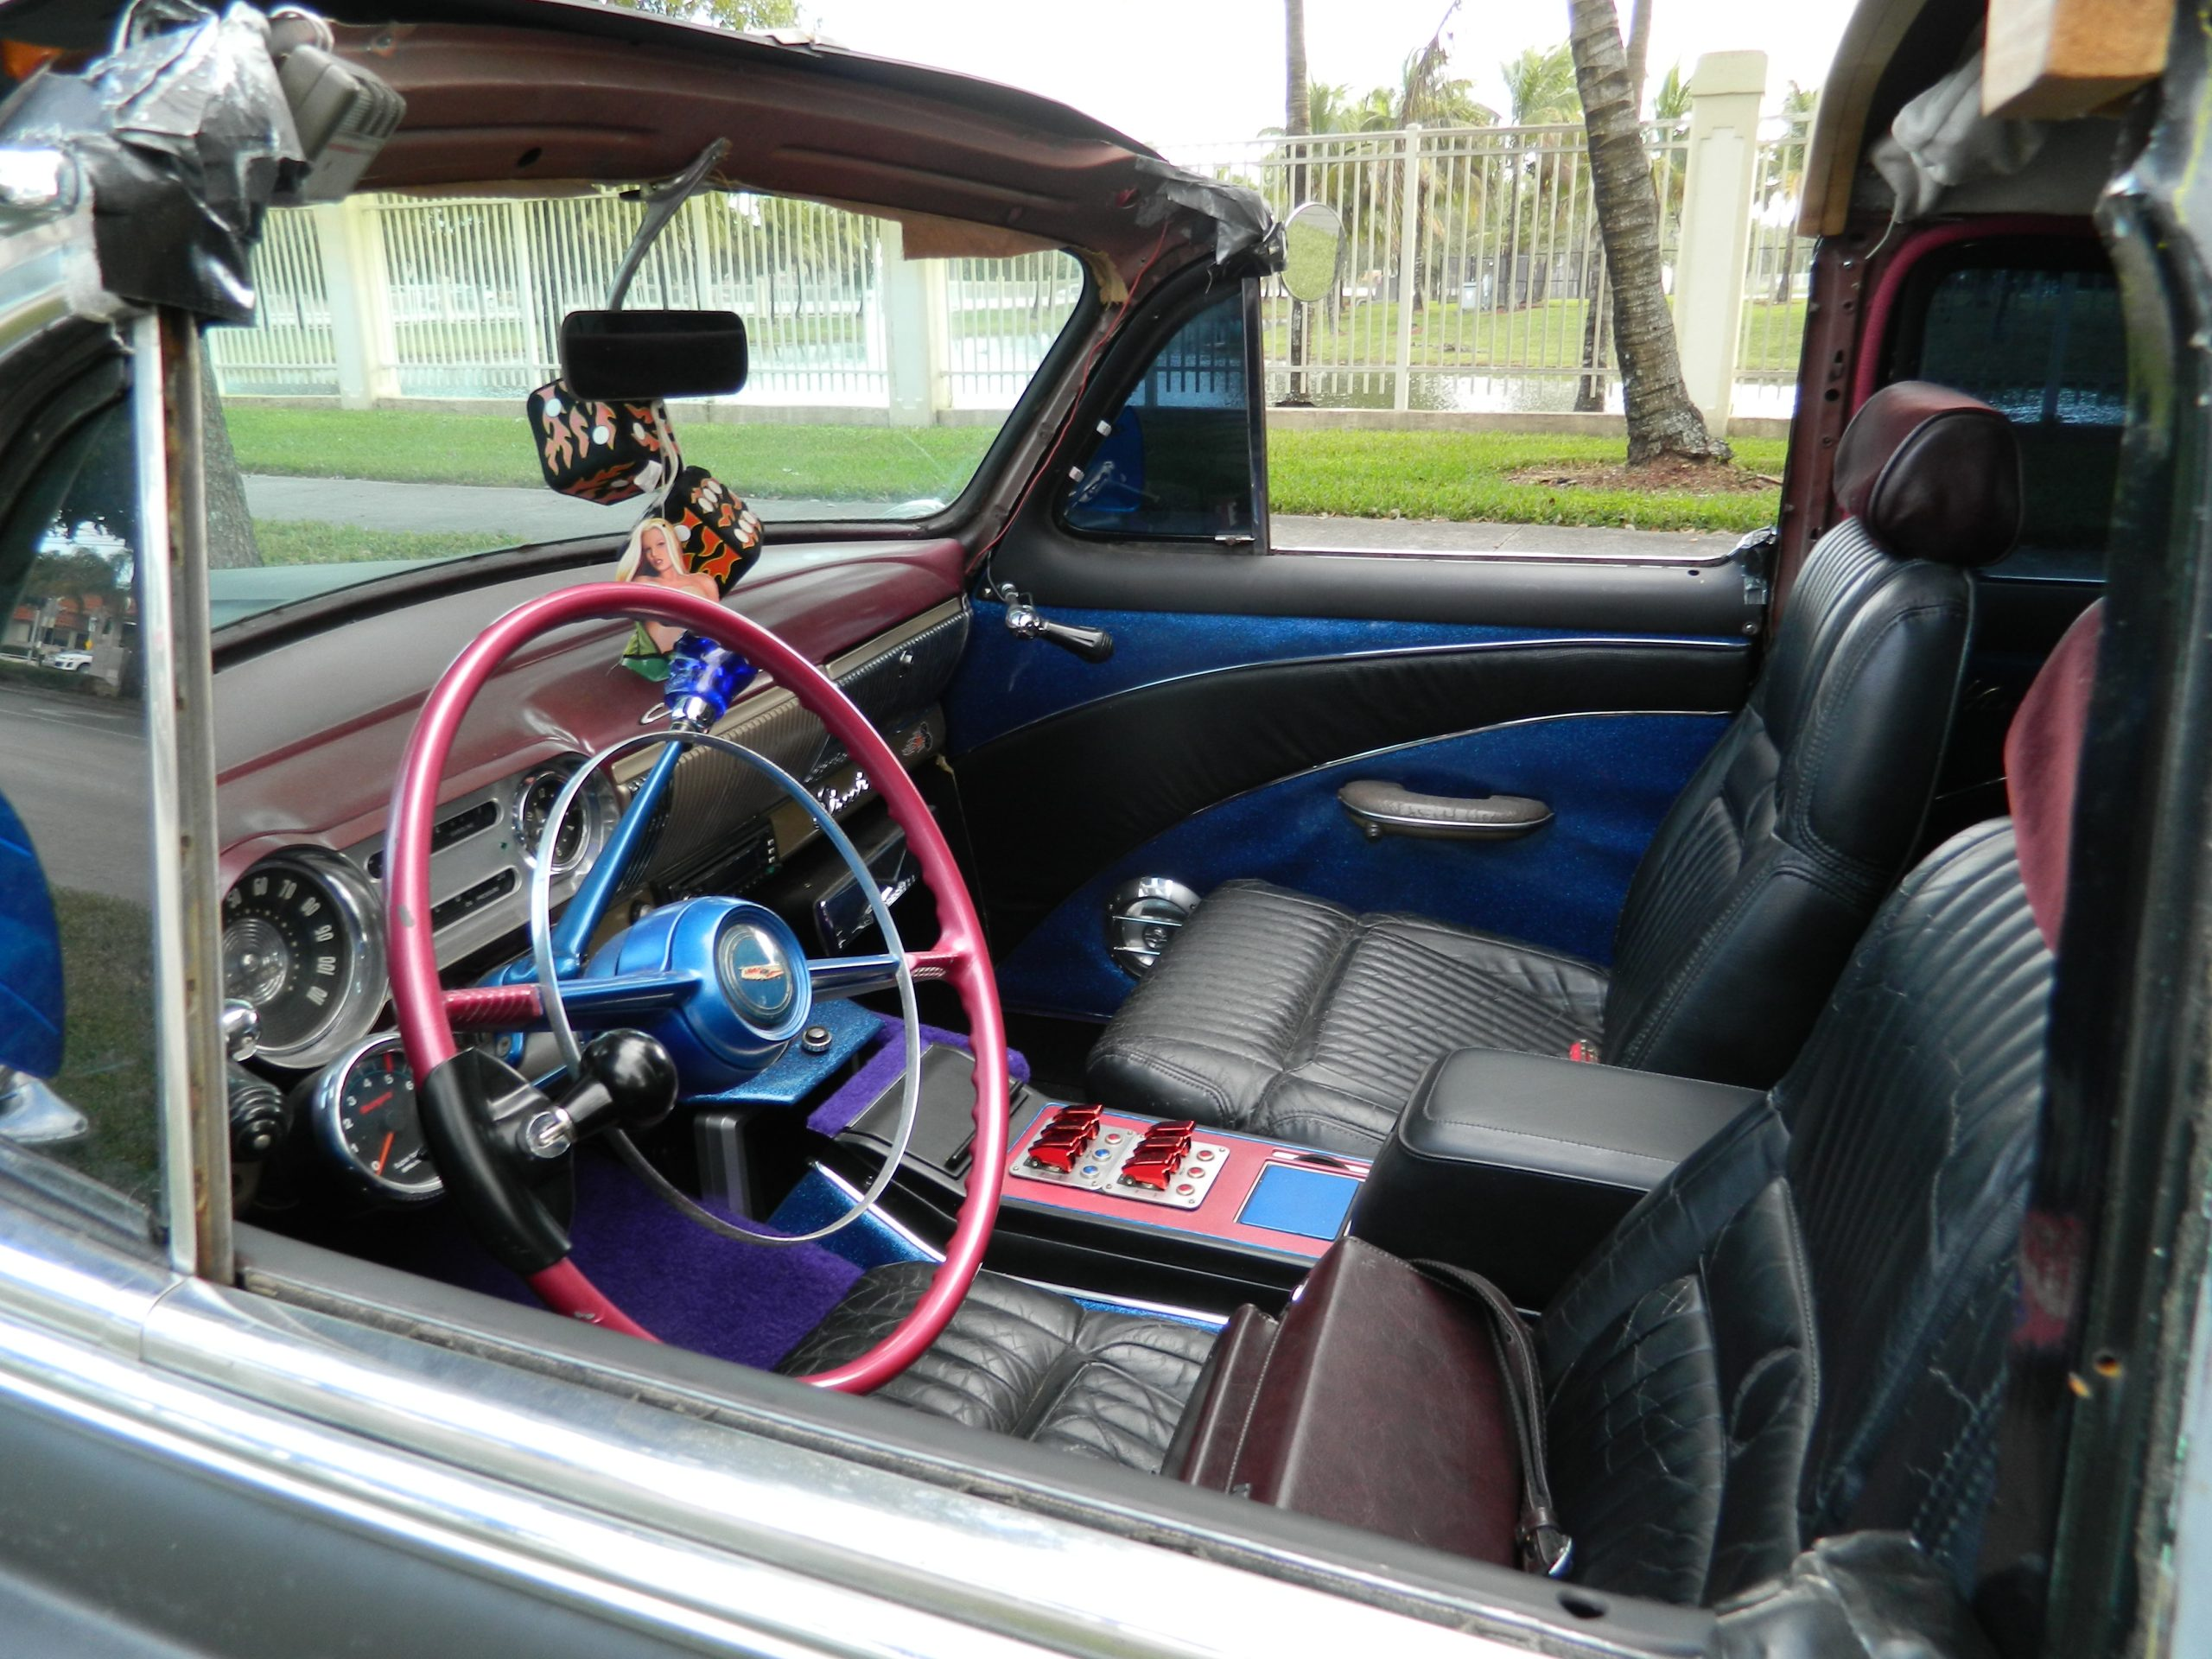 53-Chevy-interior-front-2012